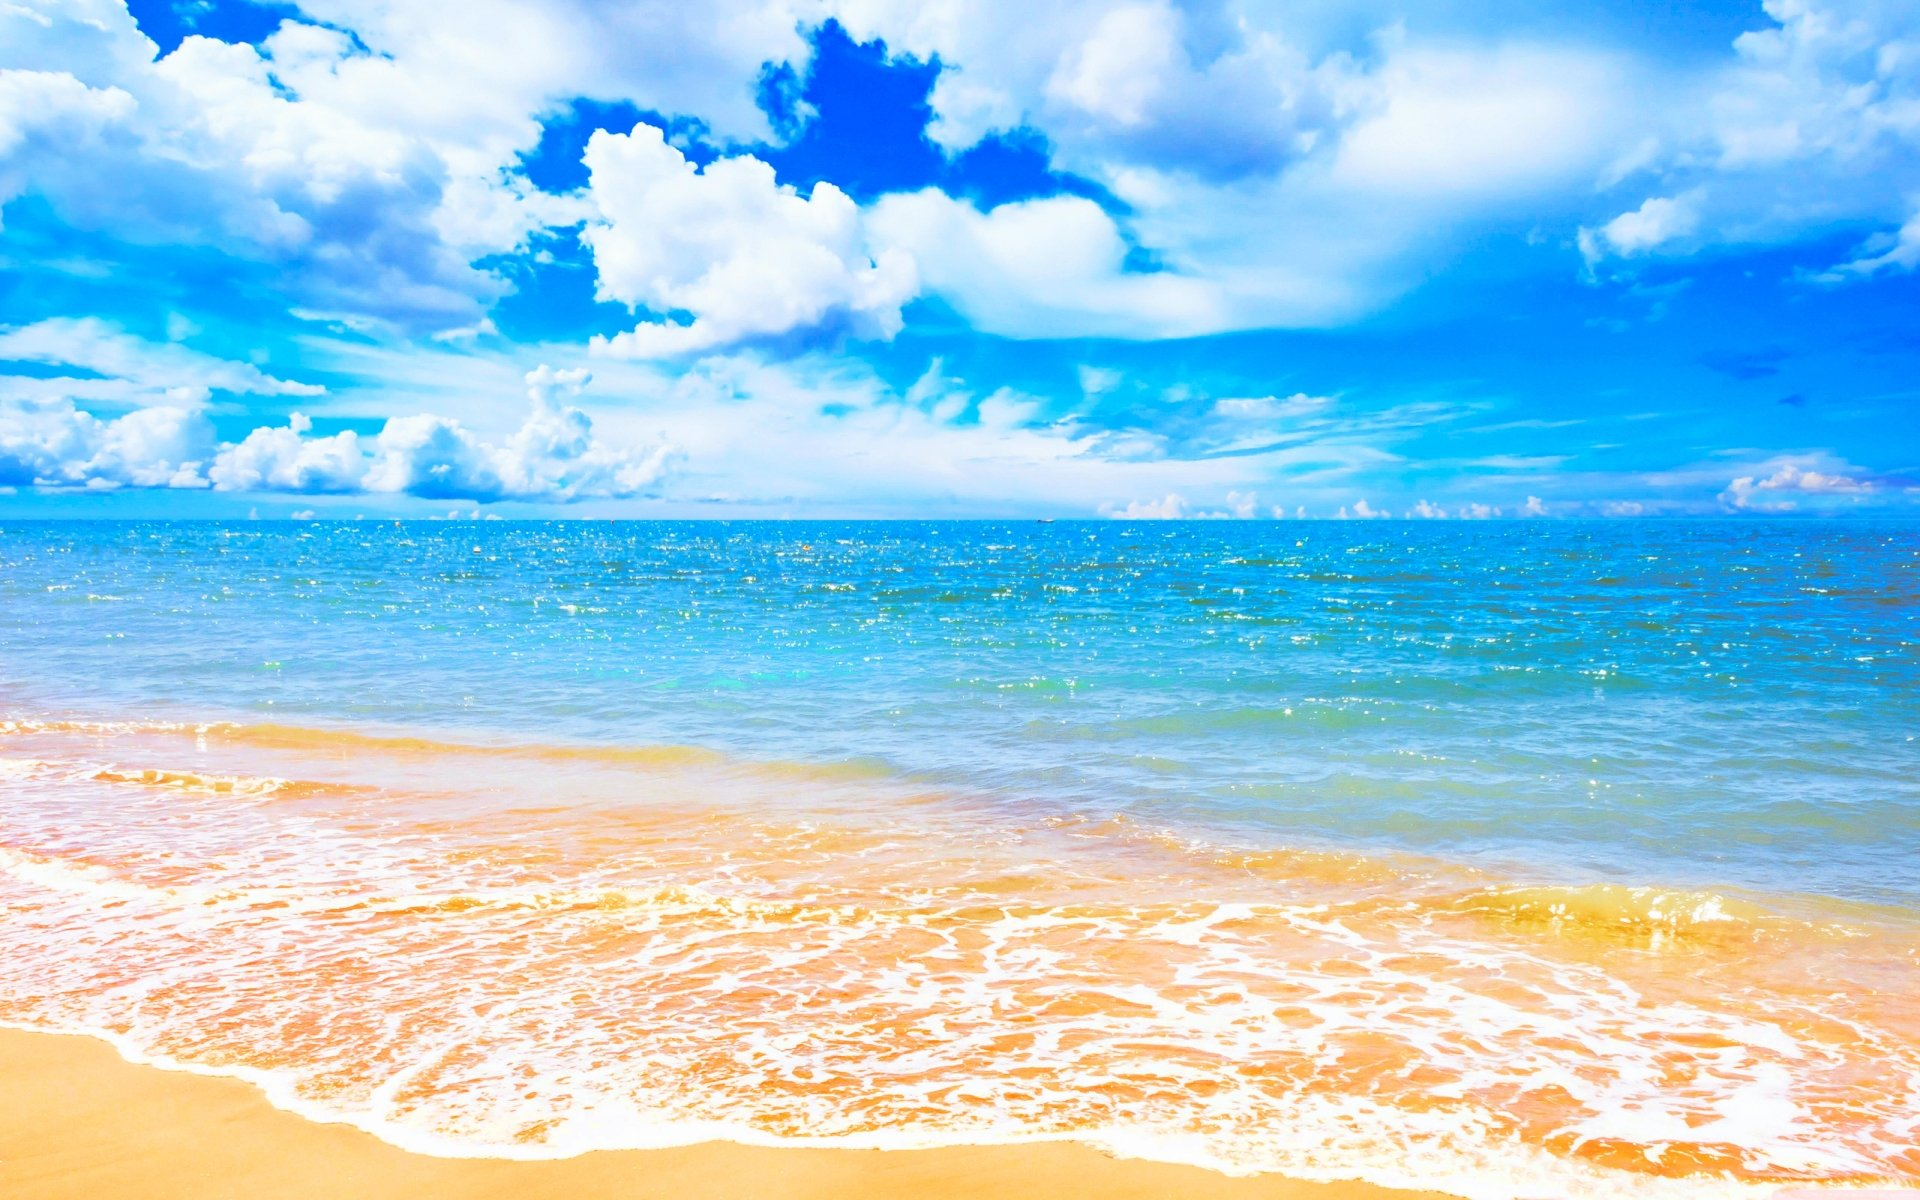 Earth - Beach  Horizon Sky Wave Blue Sea Turquoise Cloud Summer Sunny Nature Wallpaper